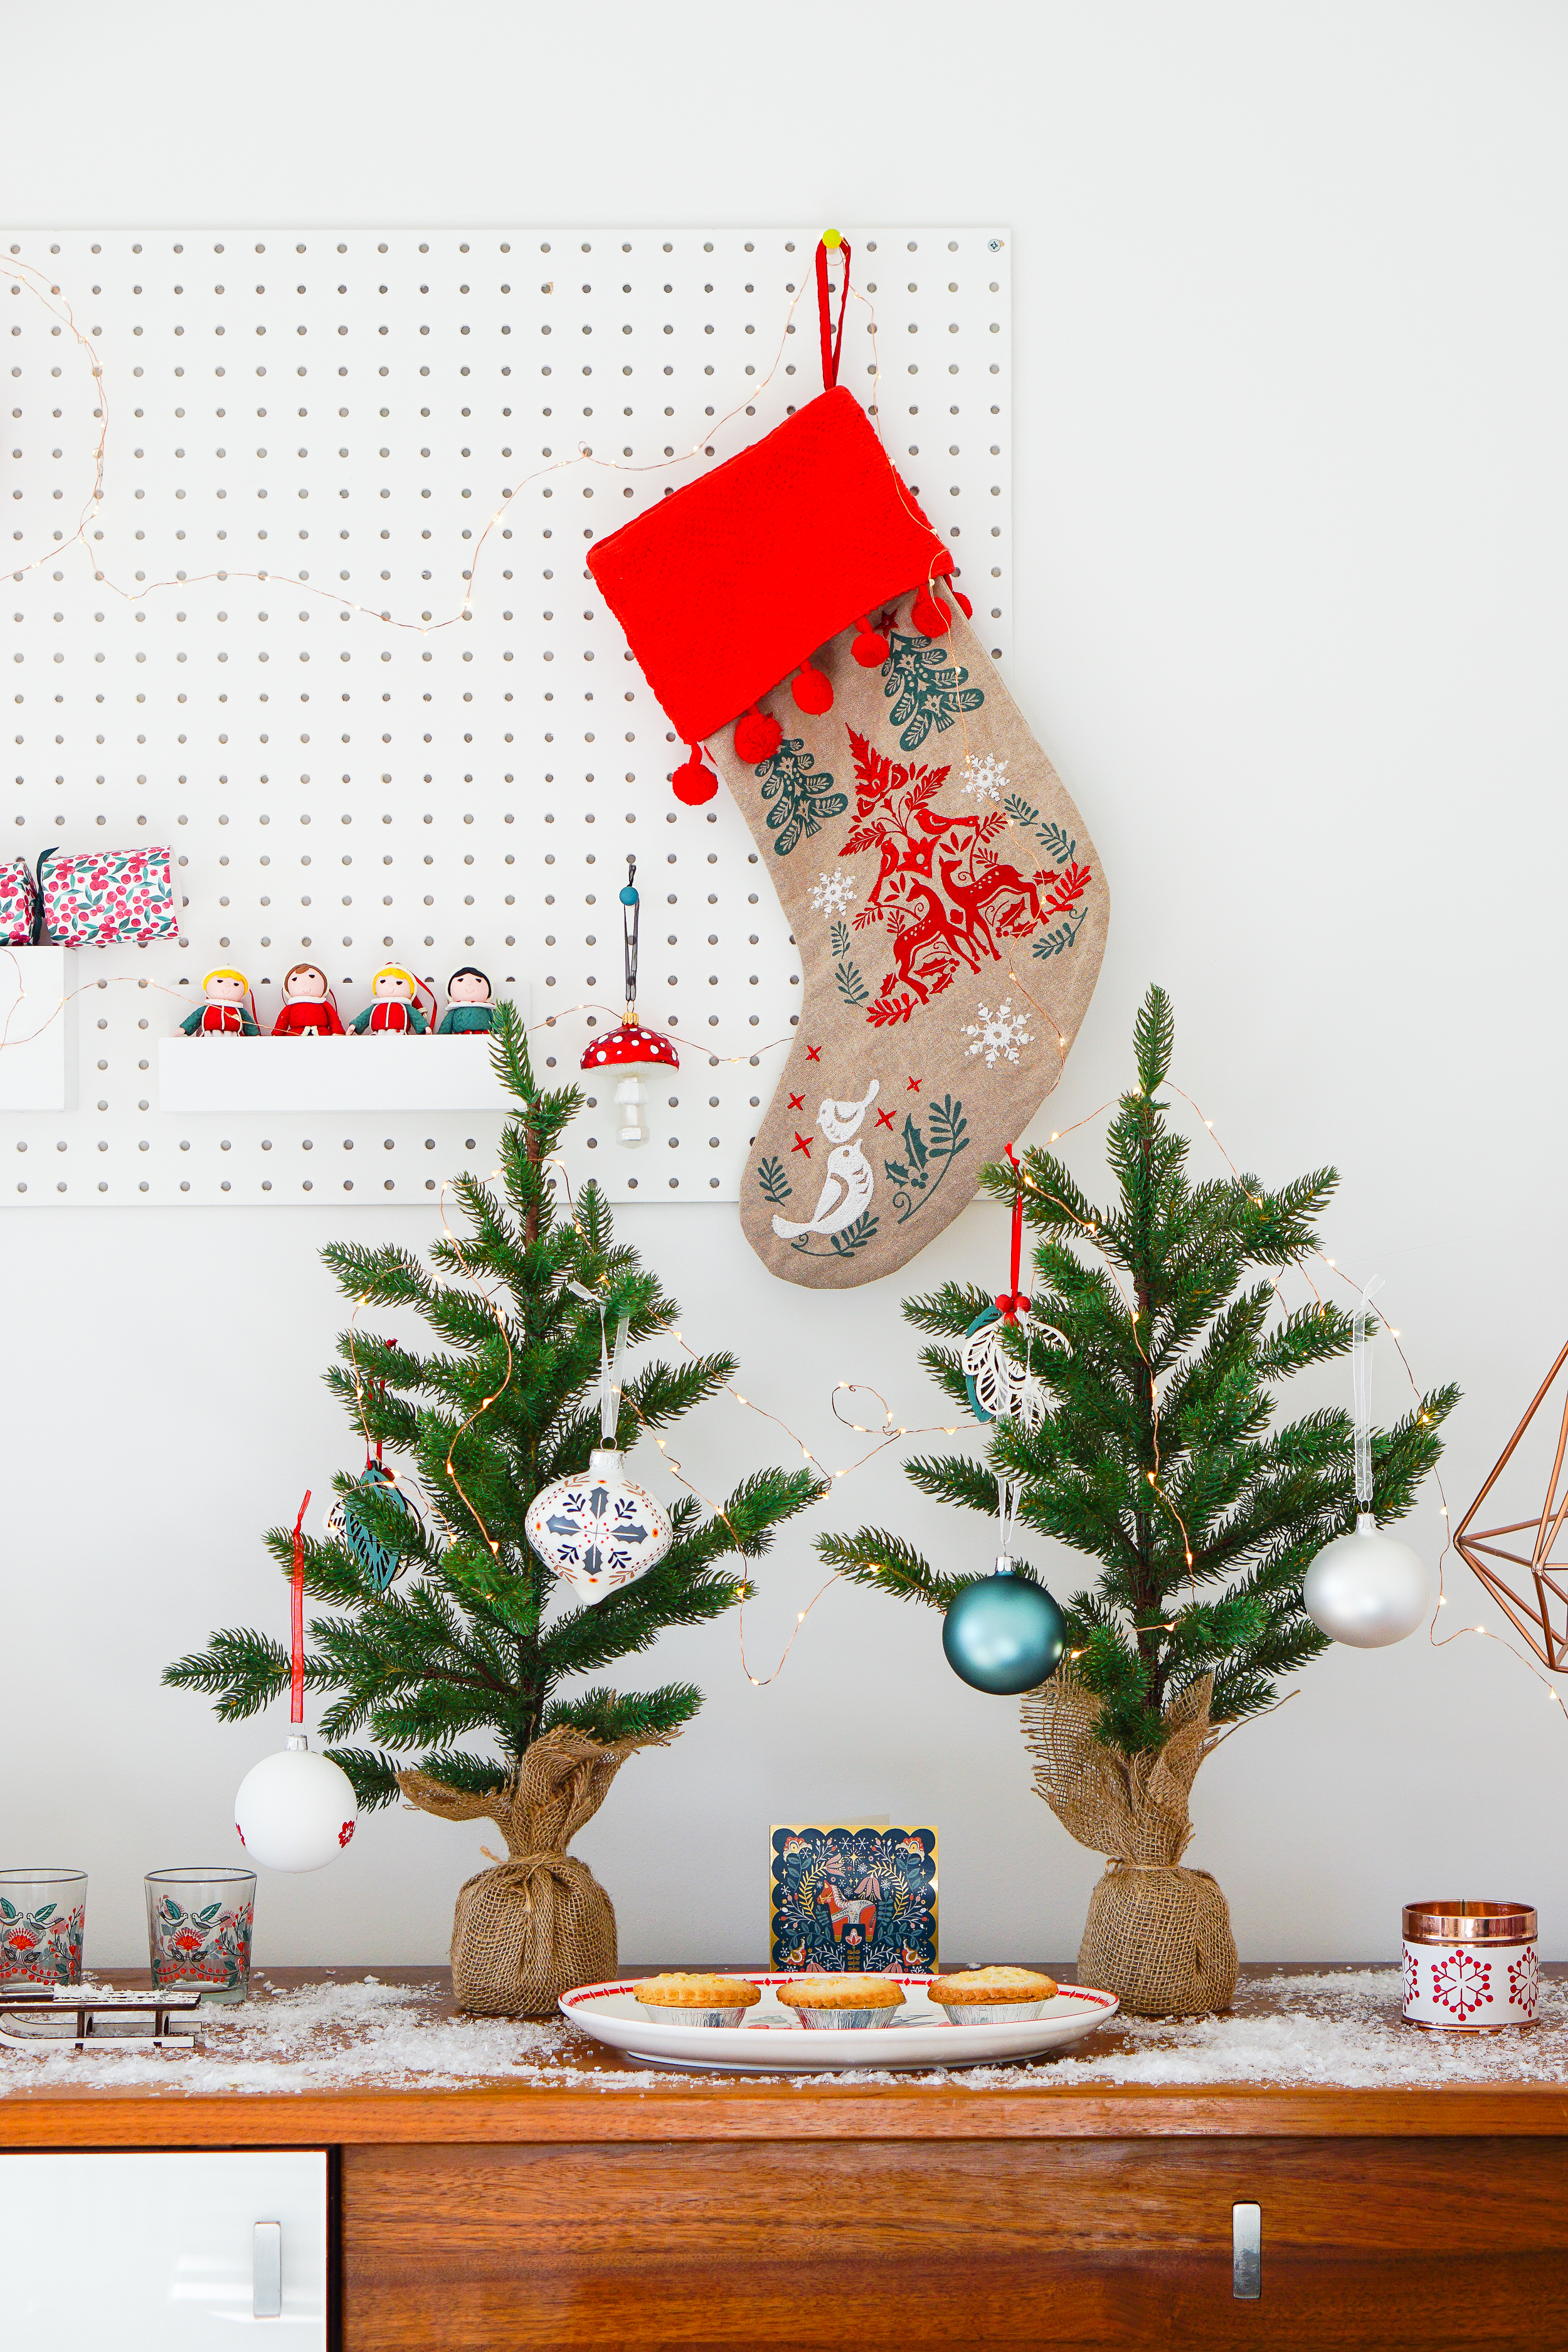 How to do a 'country' Christmas when grey and beige are not for you